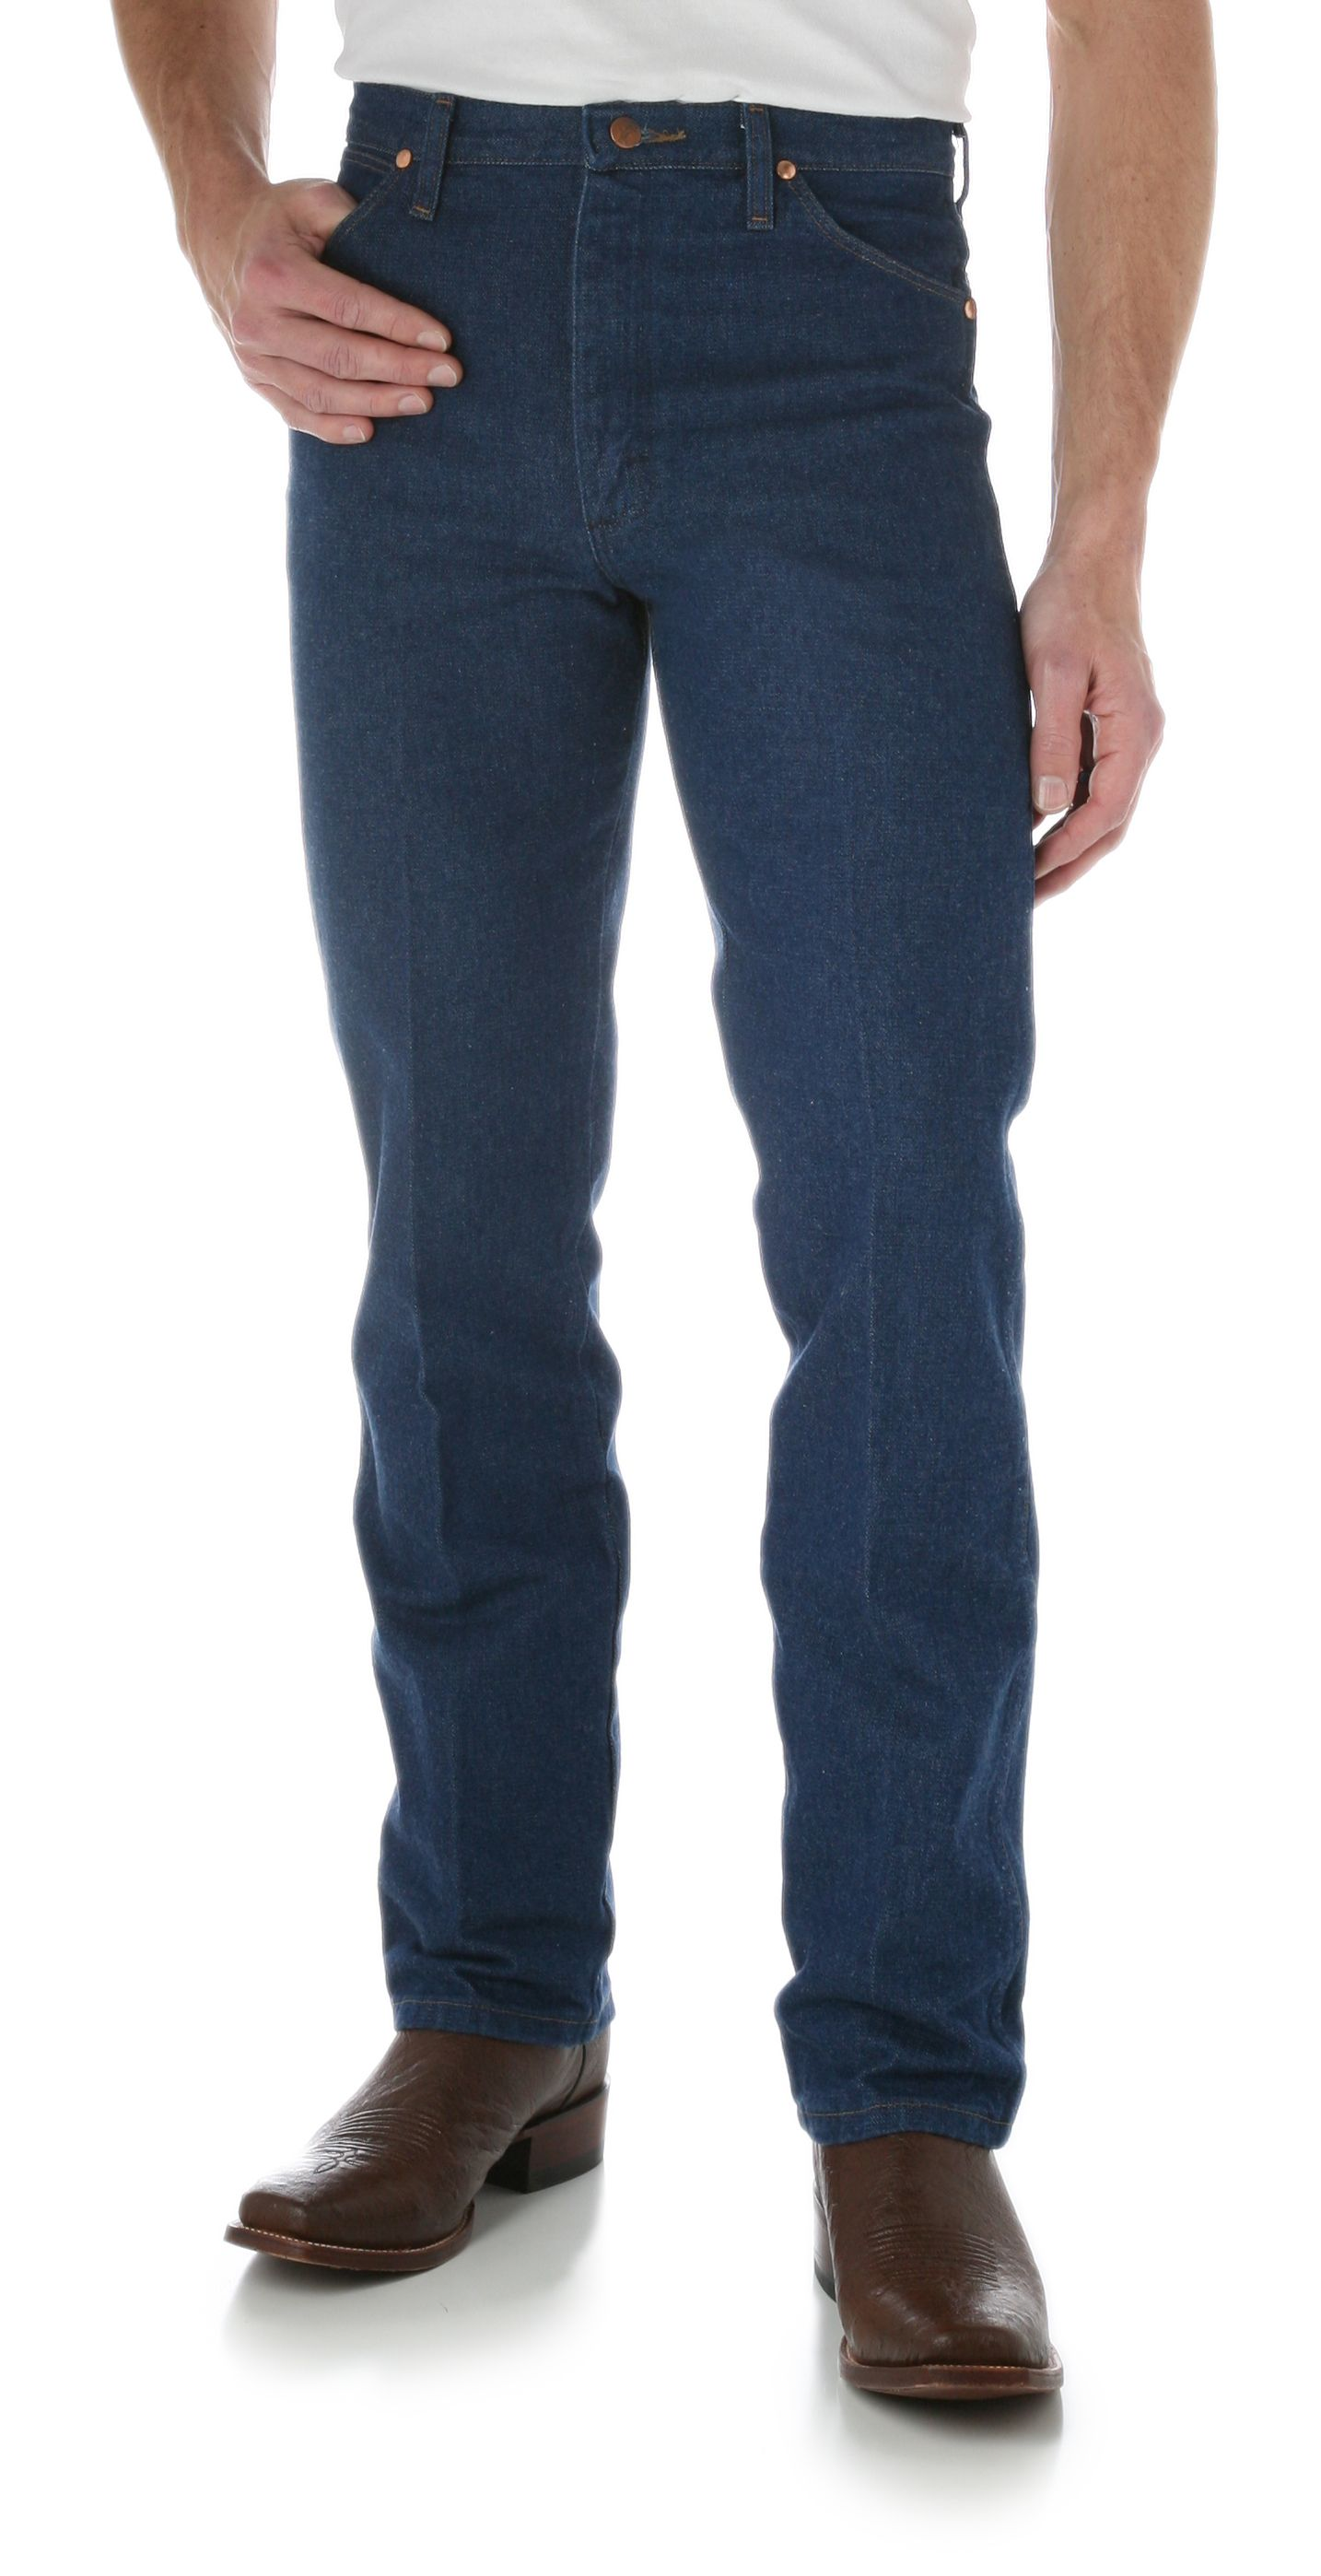 Wrangler Mens Tall and Slim Cowboy Cut Jeans